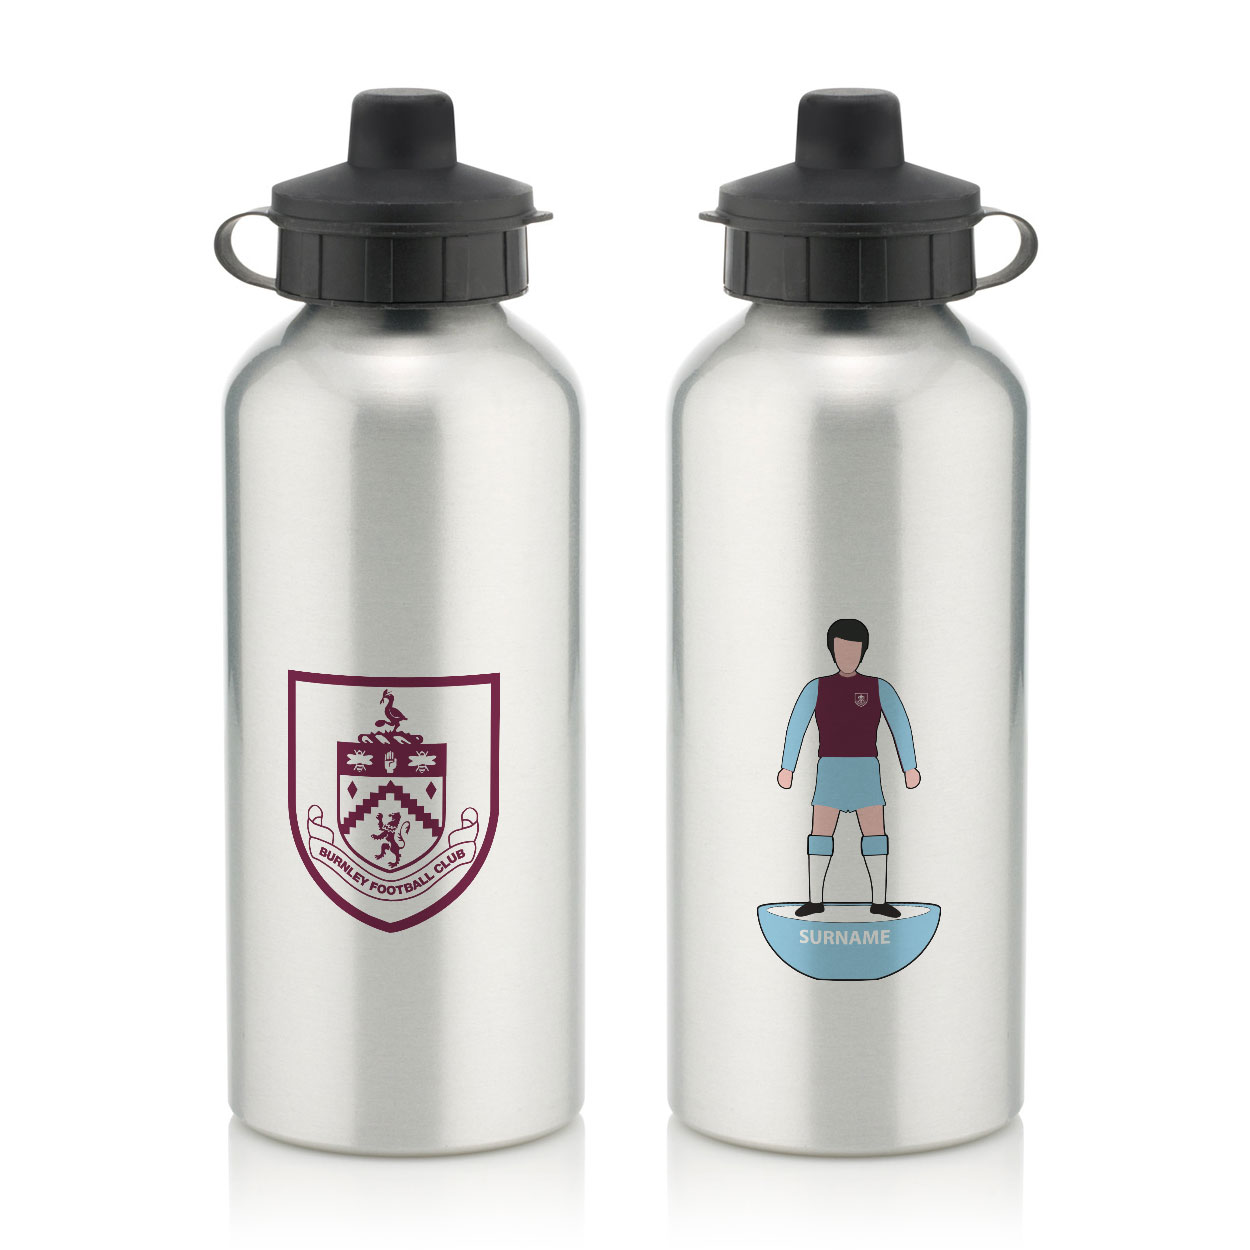 Burnley FC Player Figure Water Bottle